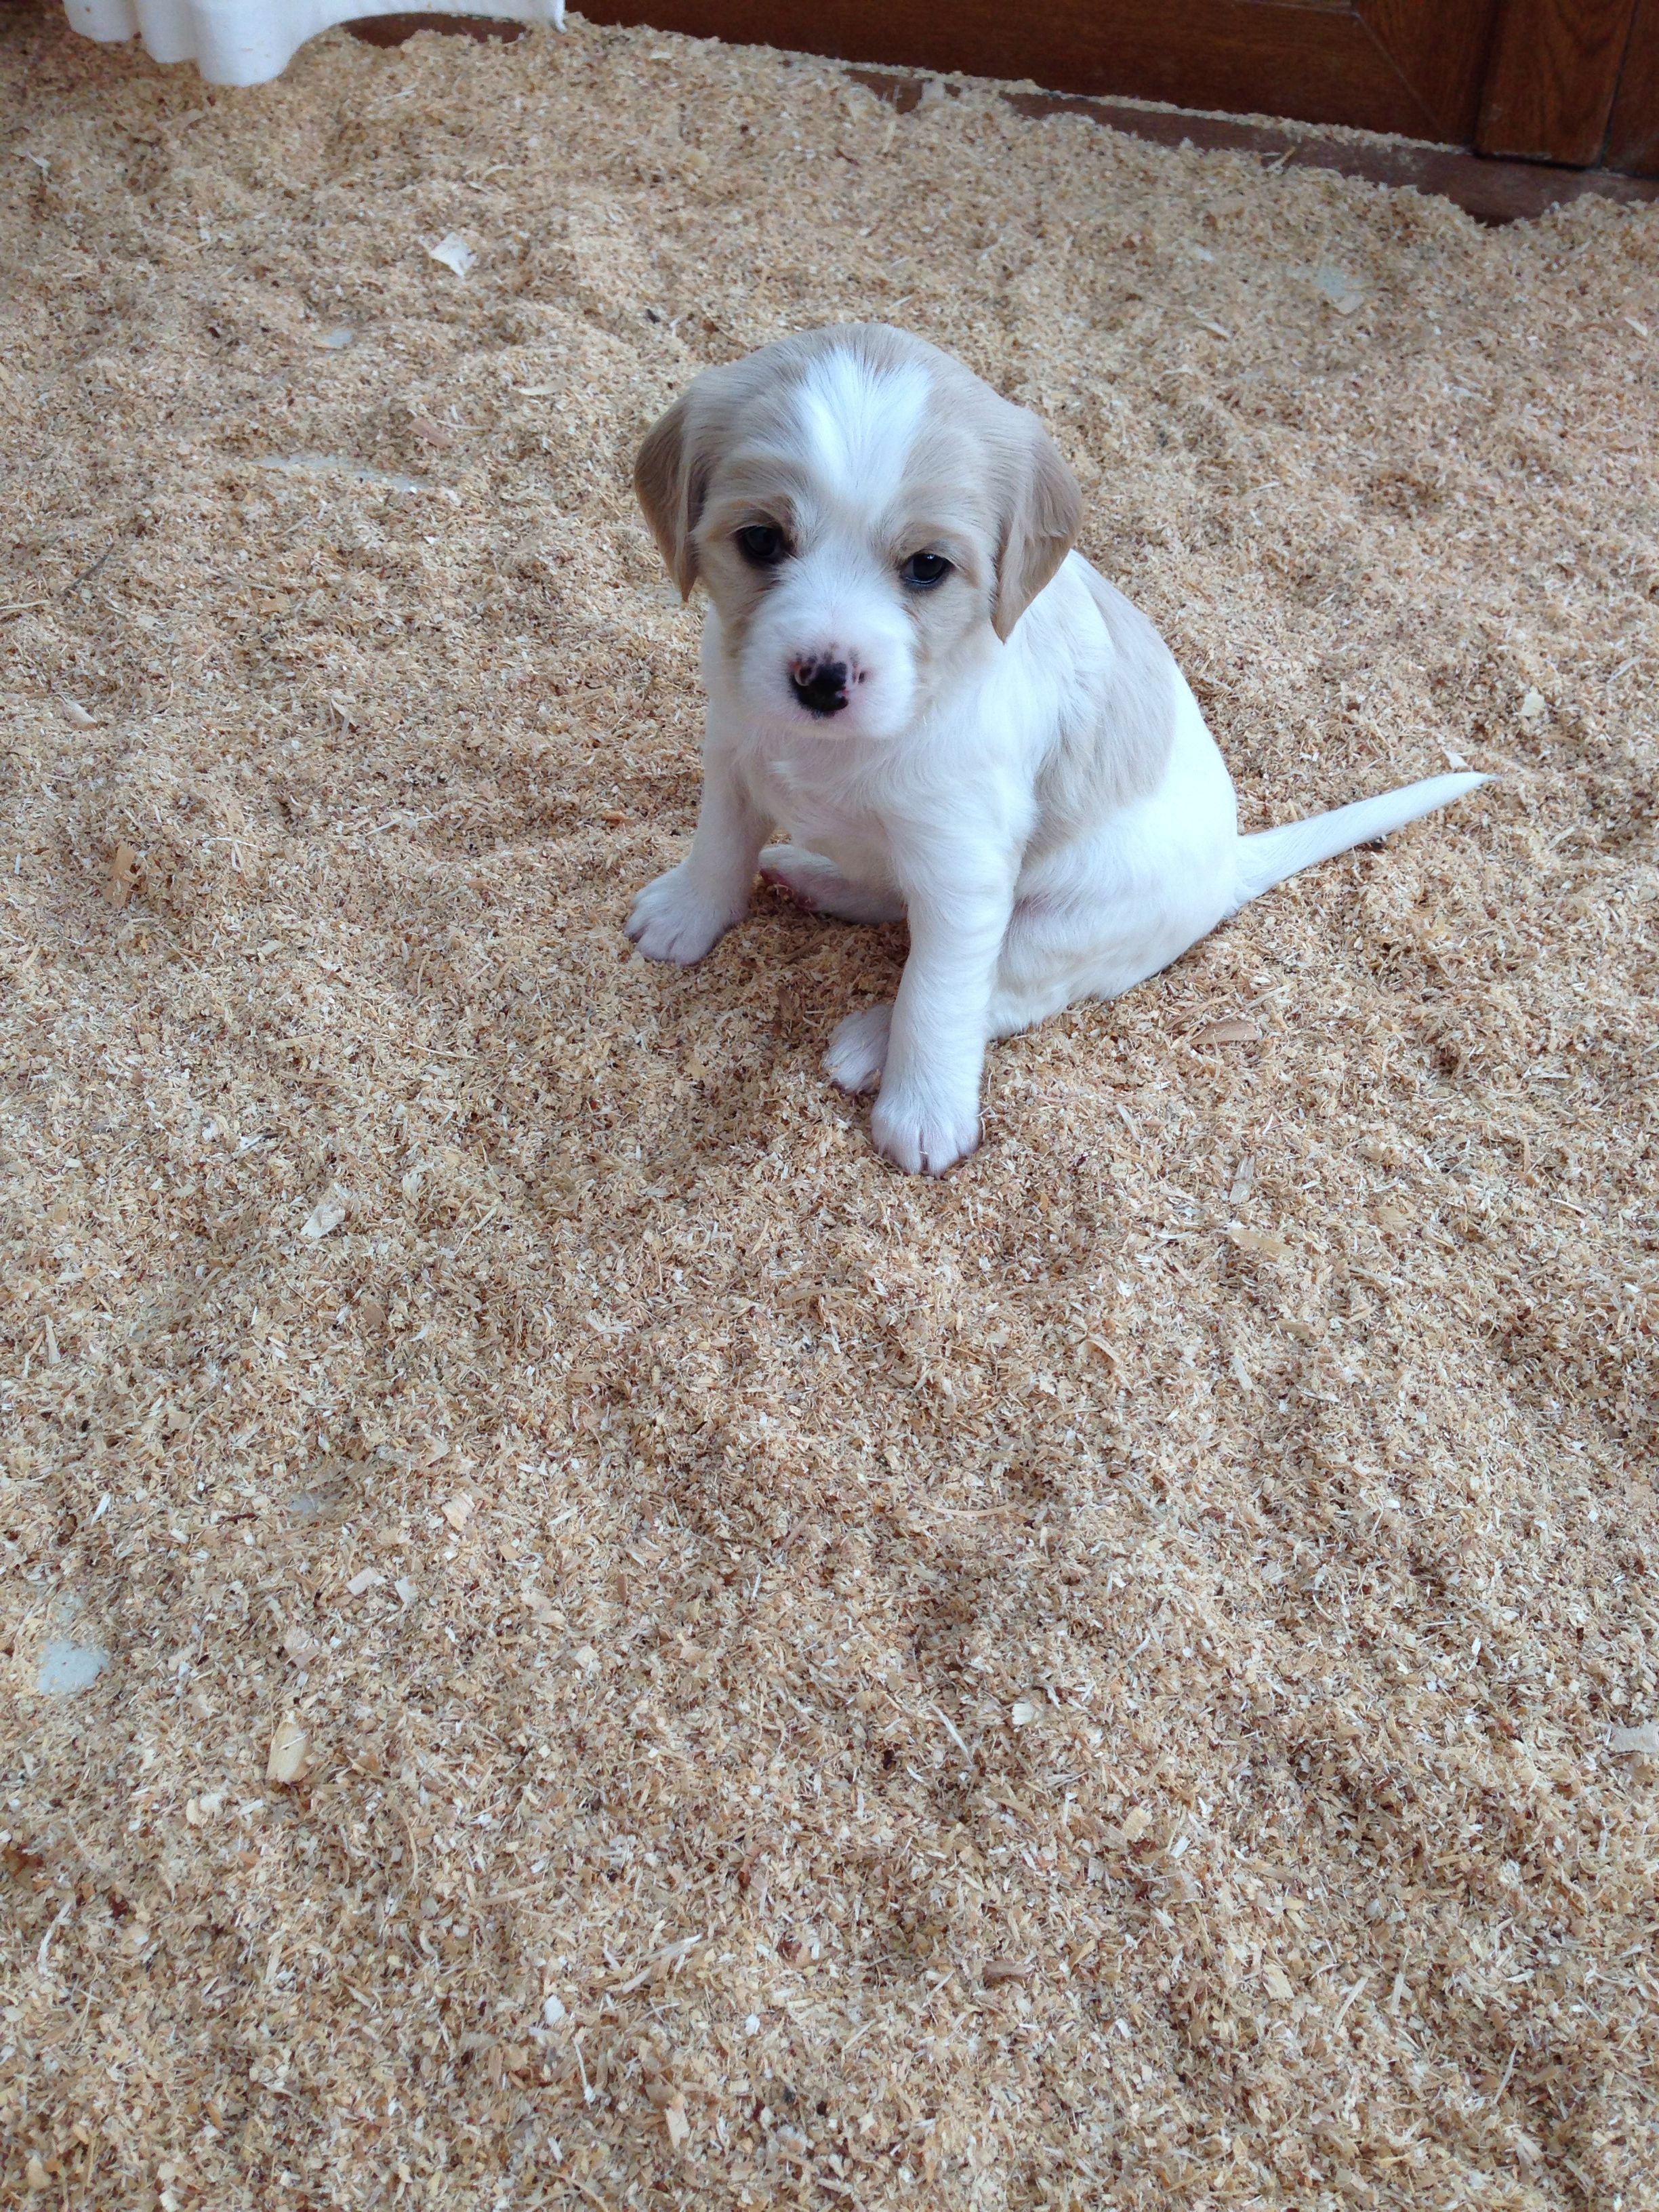 Lily - our 5 week old Cavachon. 3 weeks left until we can bring her home.